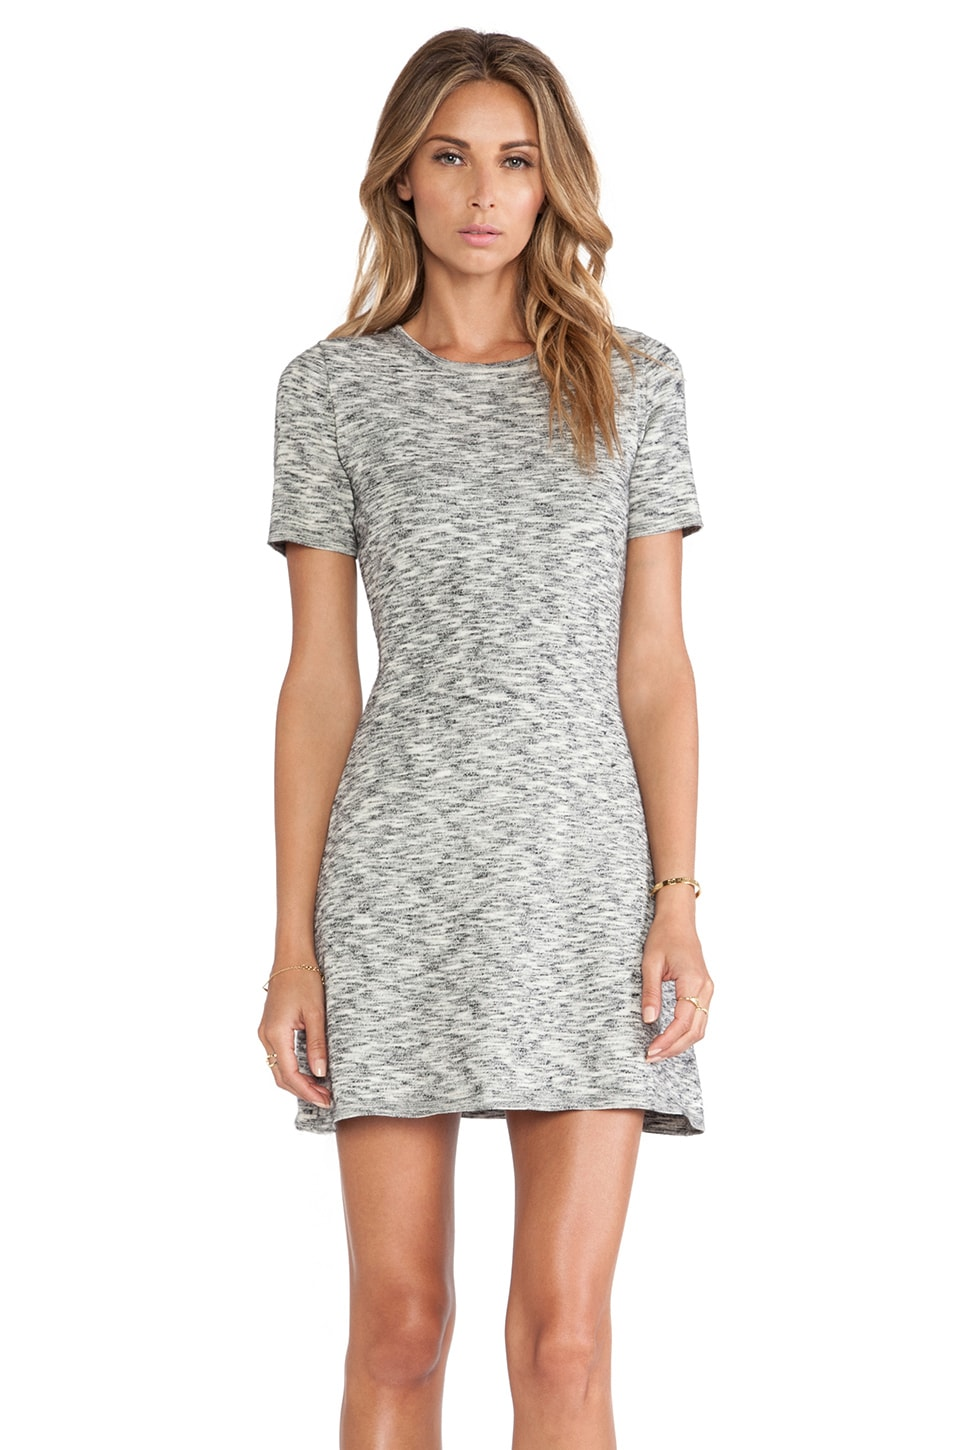 Theory Abreena Dress in Ivory Space